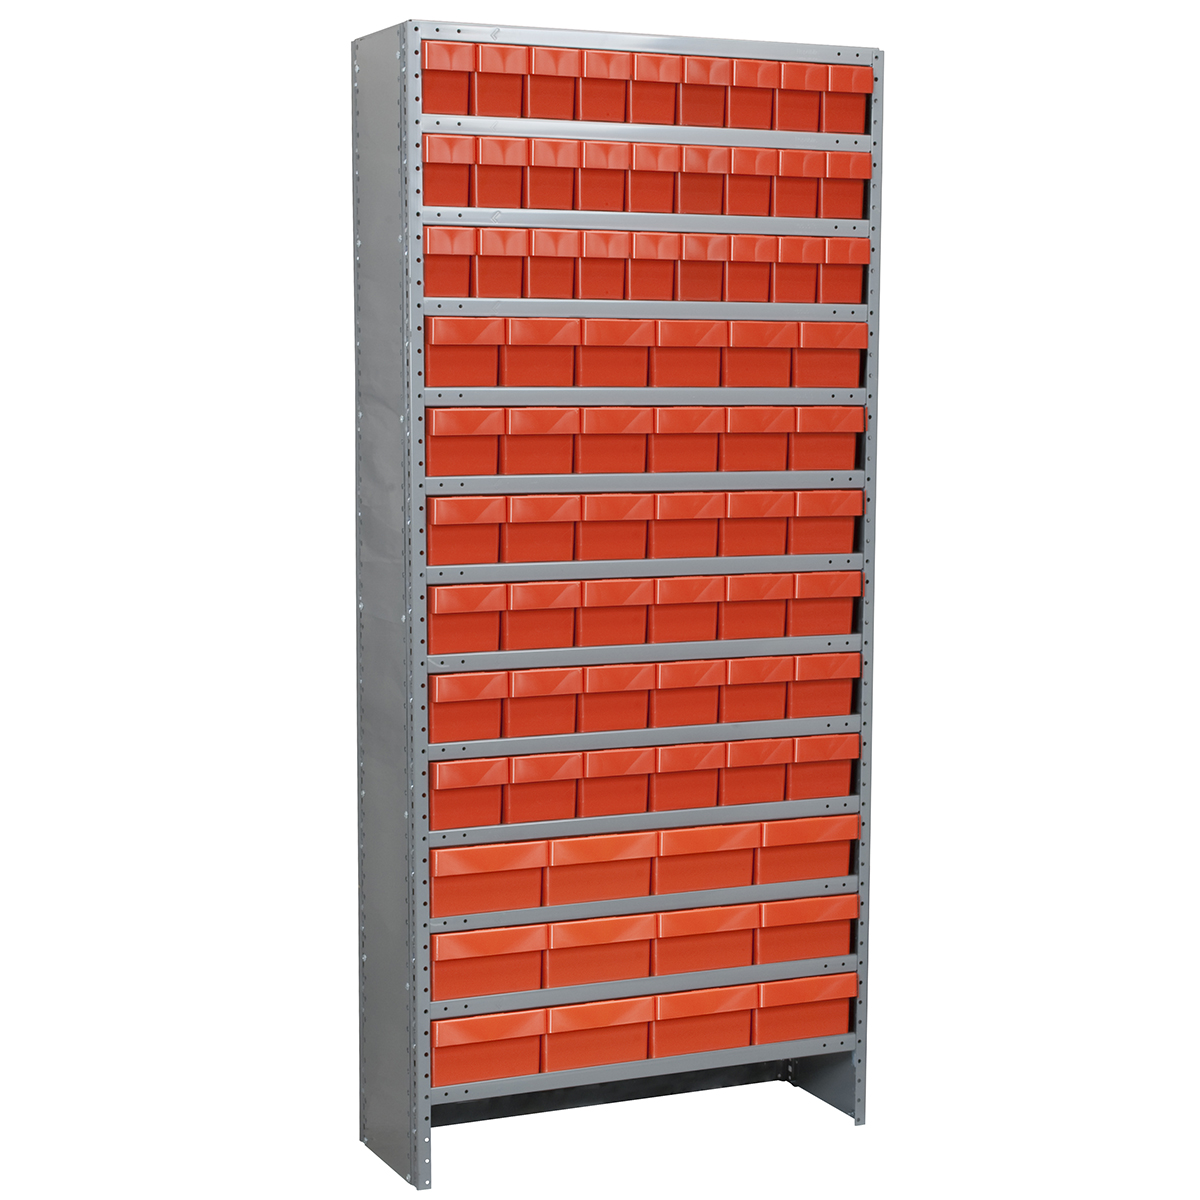 Enclosed Steel Shelving Kit, 12x36x79, 78 AkroDrawers, Gray/Red.  This item sold in carton quantities of 1.